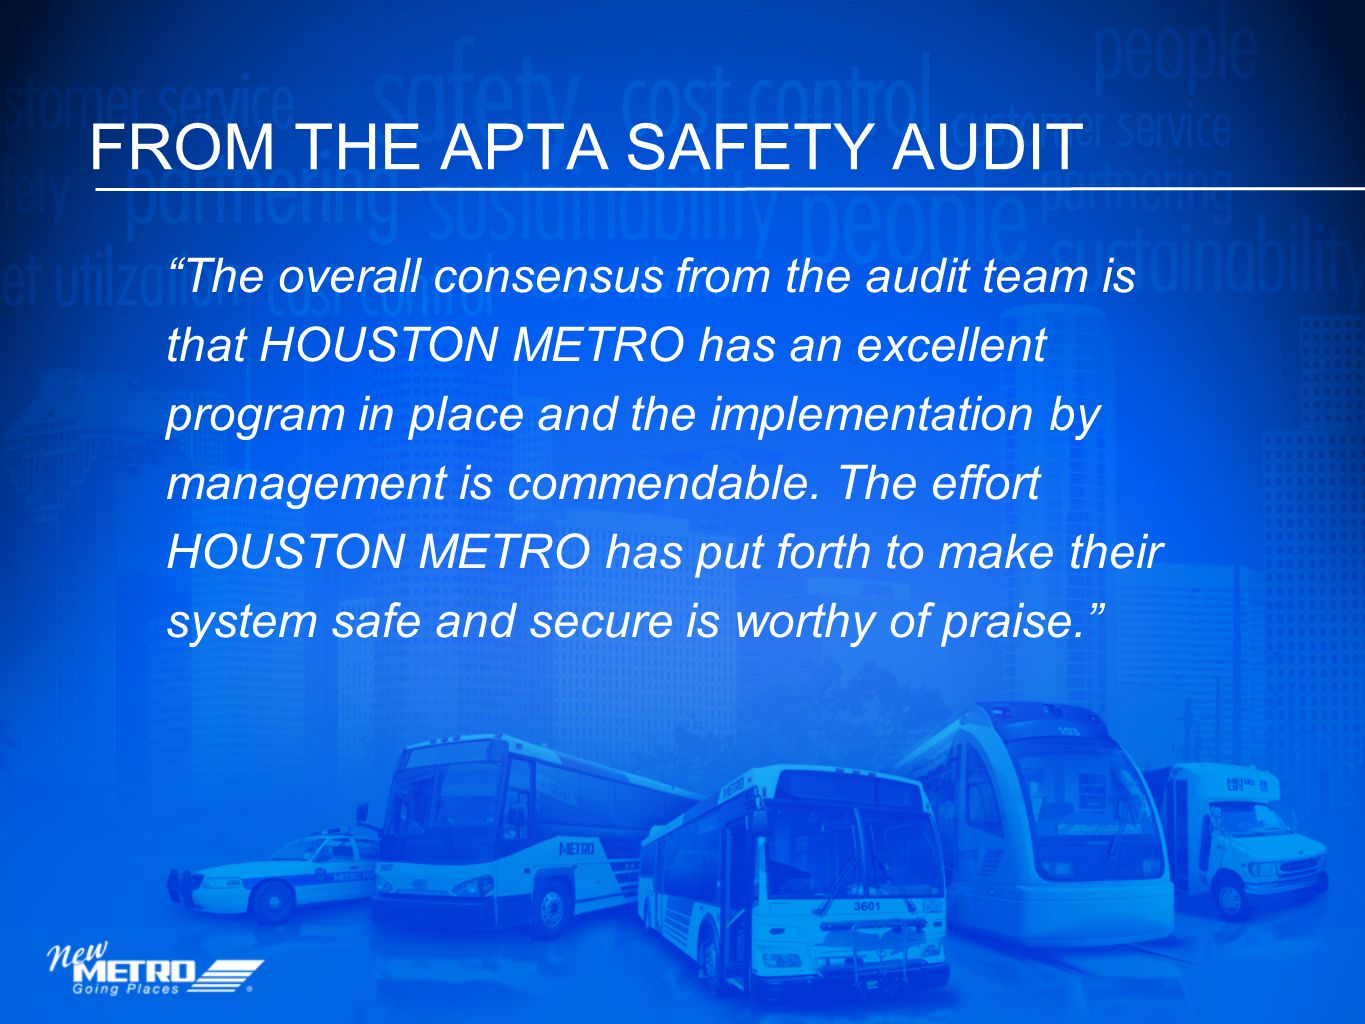 The overall consensus from the audit team is that HOUSTON METRO has an excellent program in place and the implementation by management is commendable.